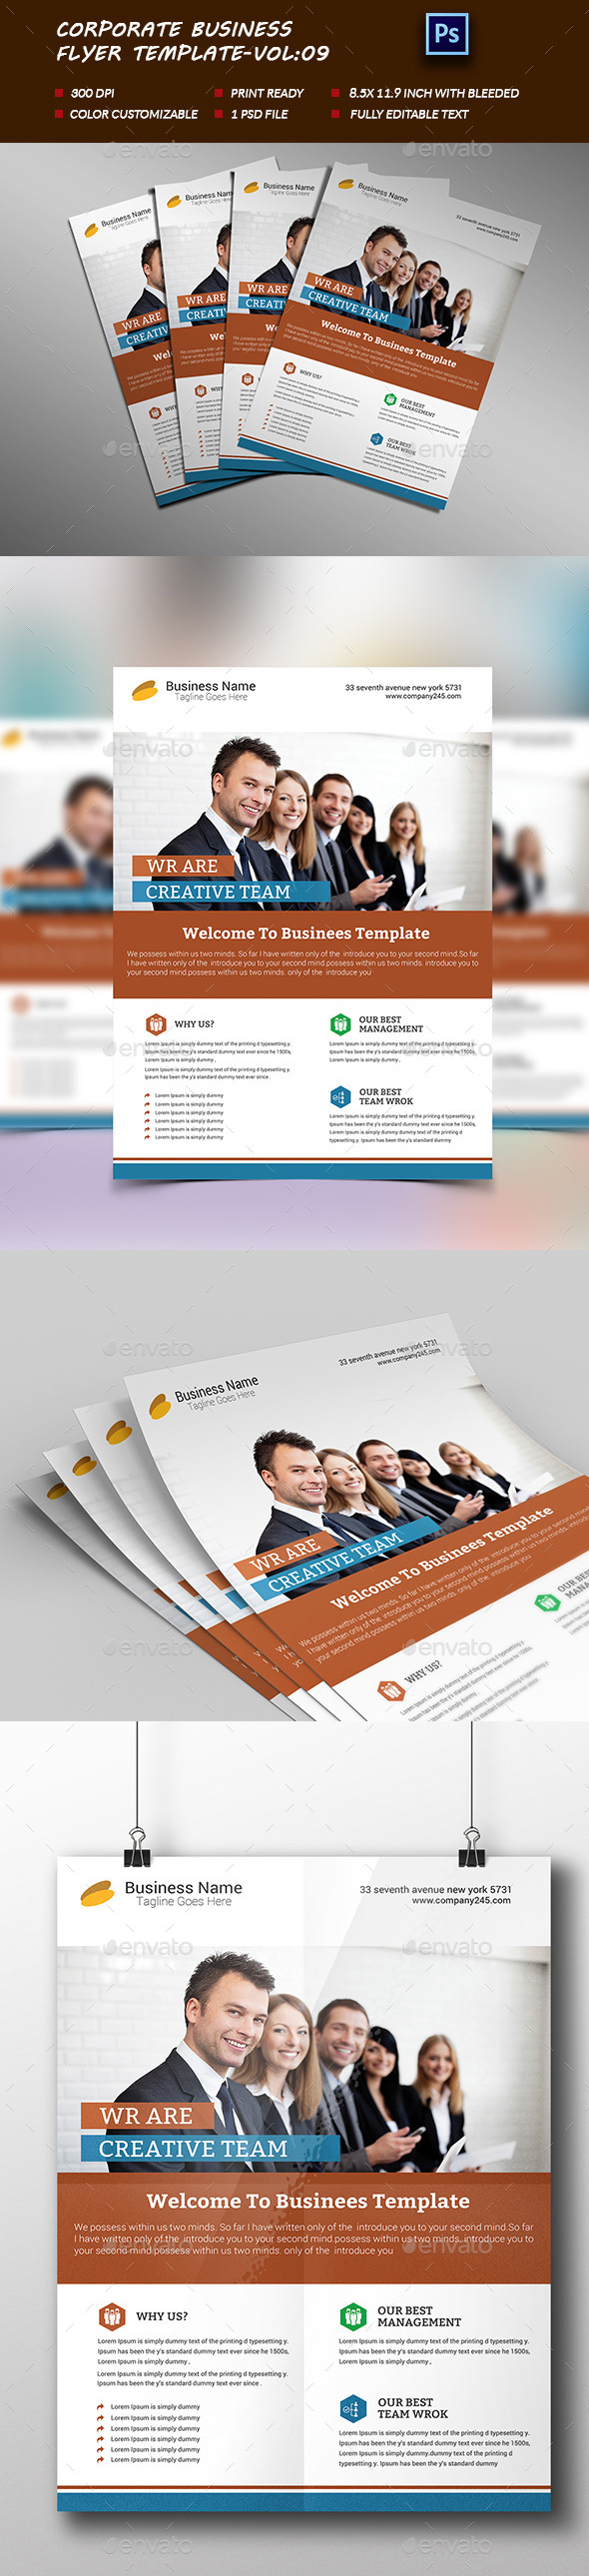 Corporate Business Flyer Template vol:09 - Corporate Flyers